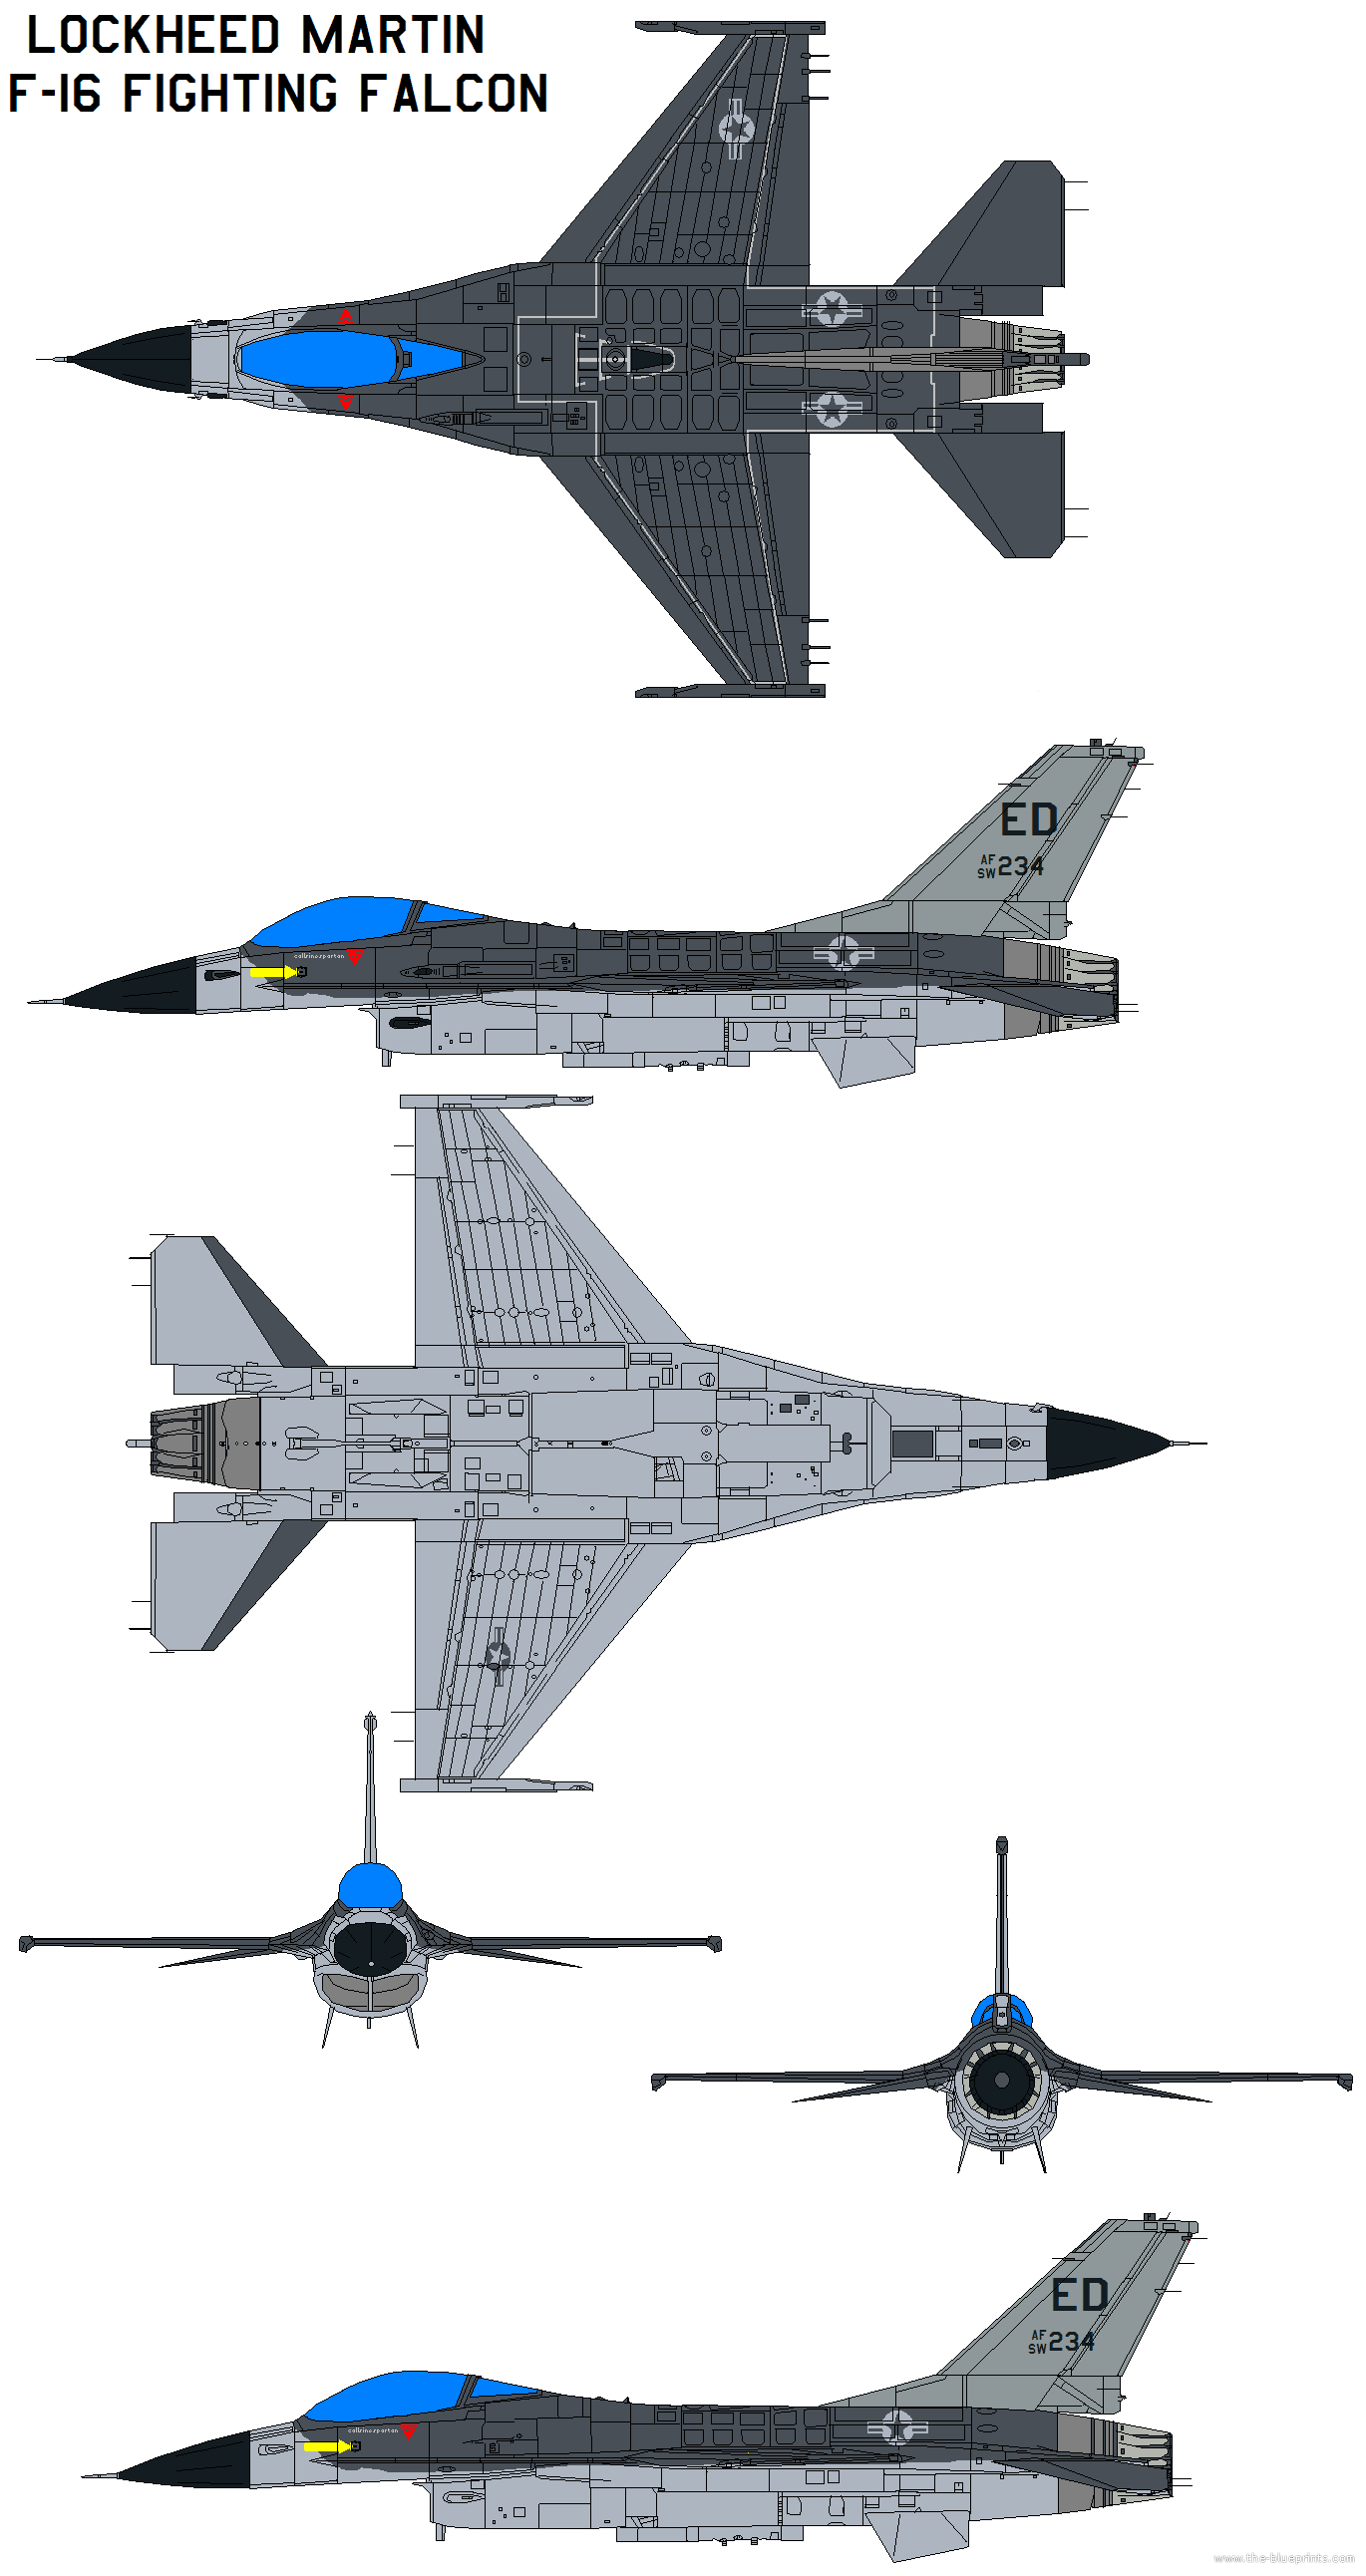 Submit Vat Online >> Blueprints > Modern airplanes > Lockheed > Lockheed Martin F-16 Fighting Falcon